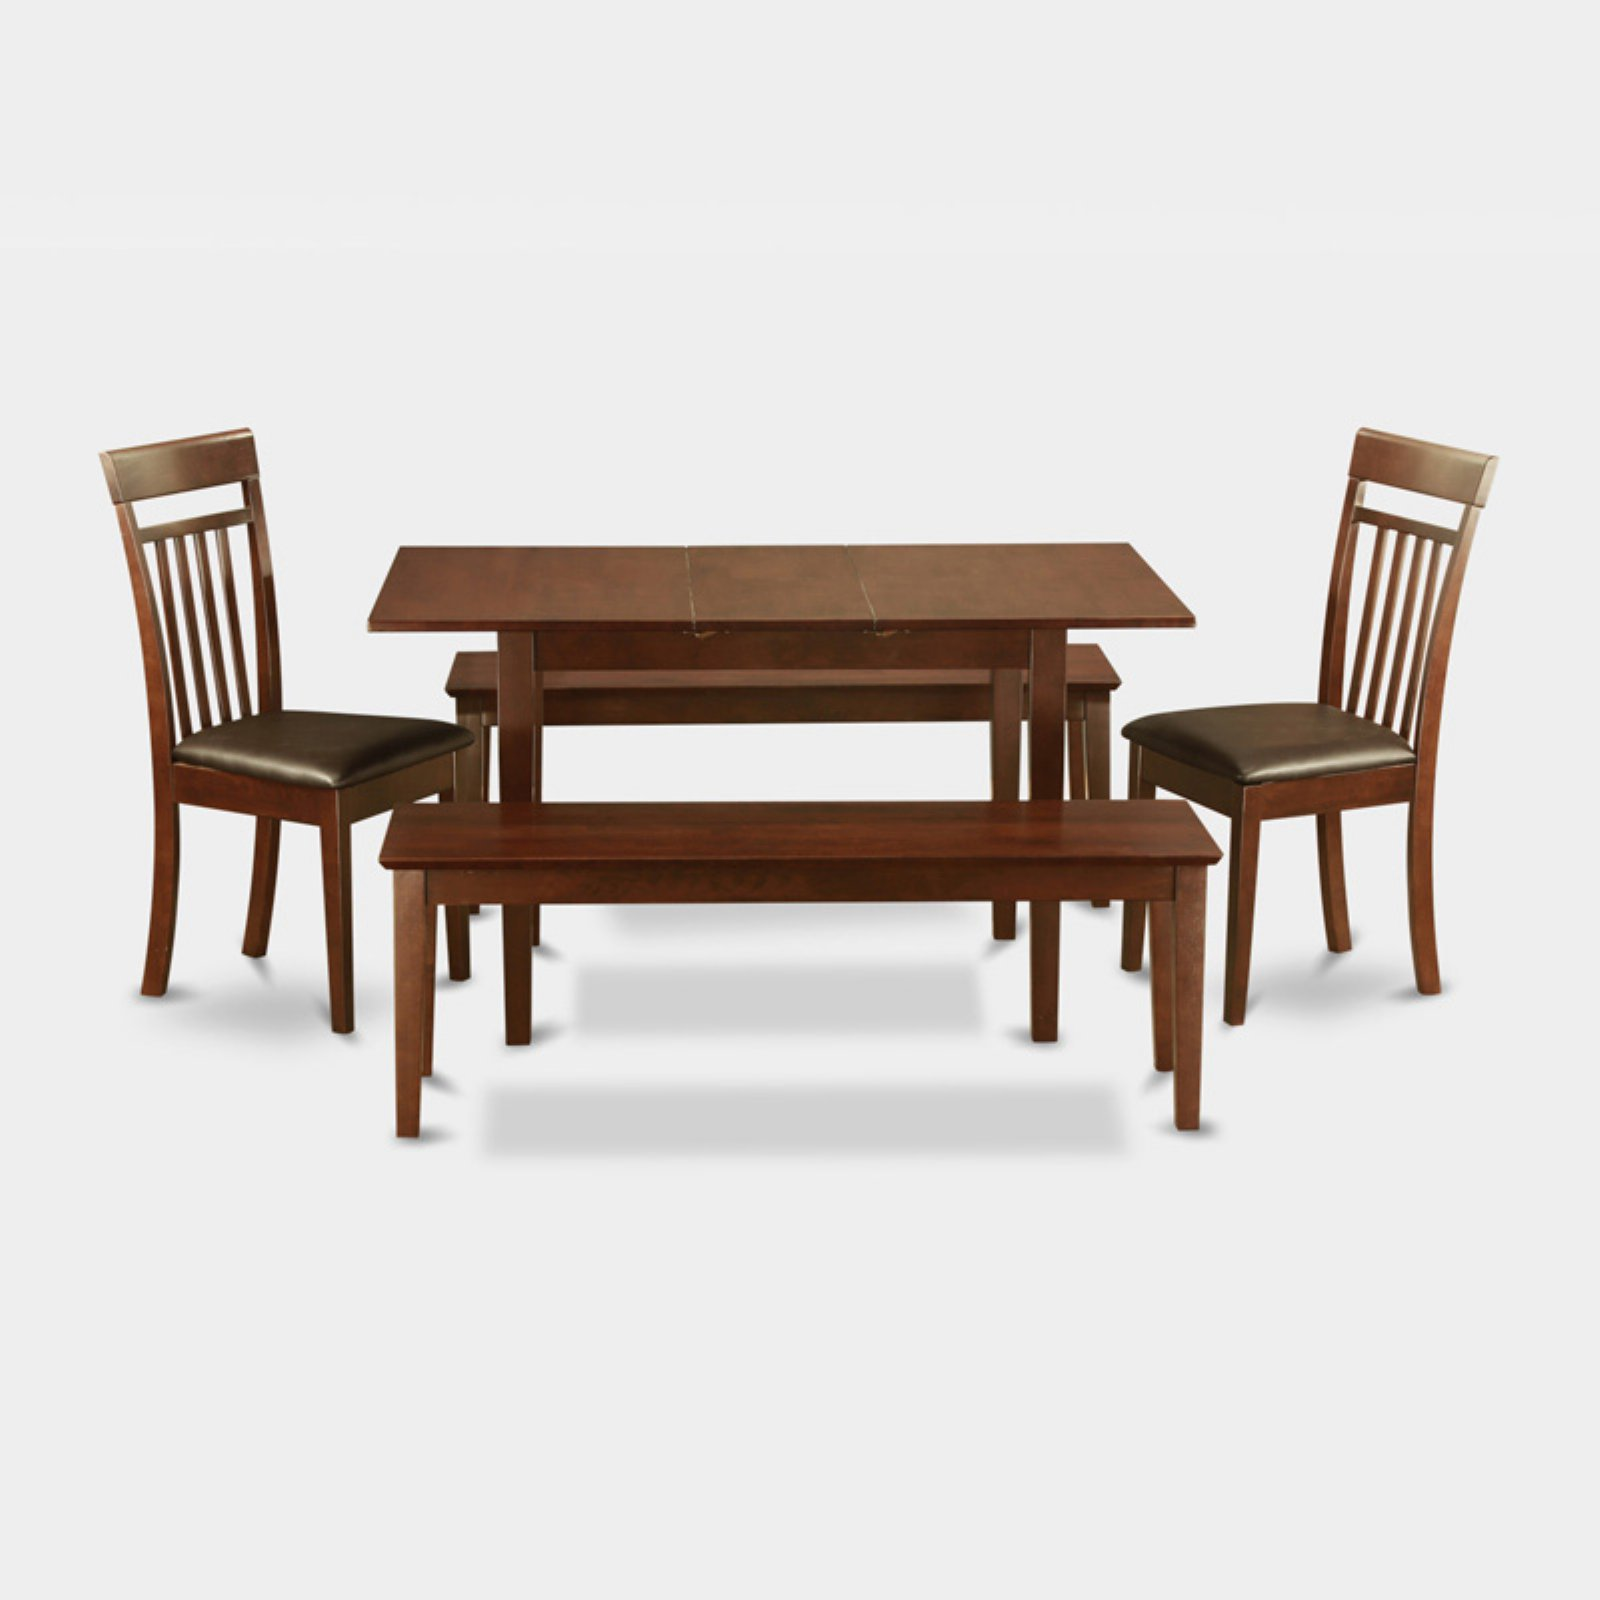 East West Furniture Norfolk 5 Piece Sheraton Dining Table Set with 2 Benches